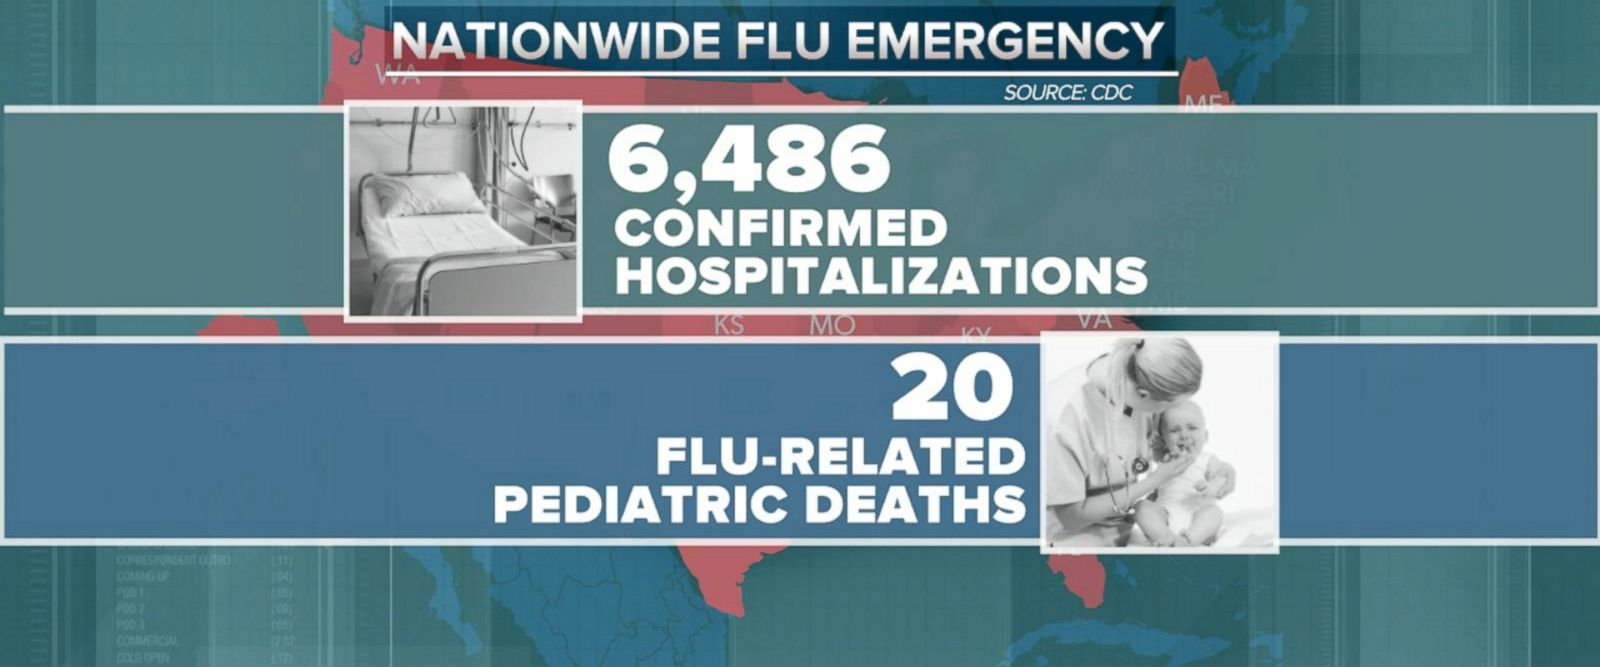 VIDEO: How to protect yourself when someone in your family has the flu